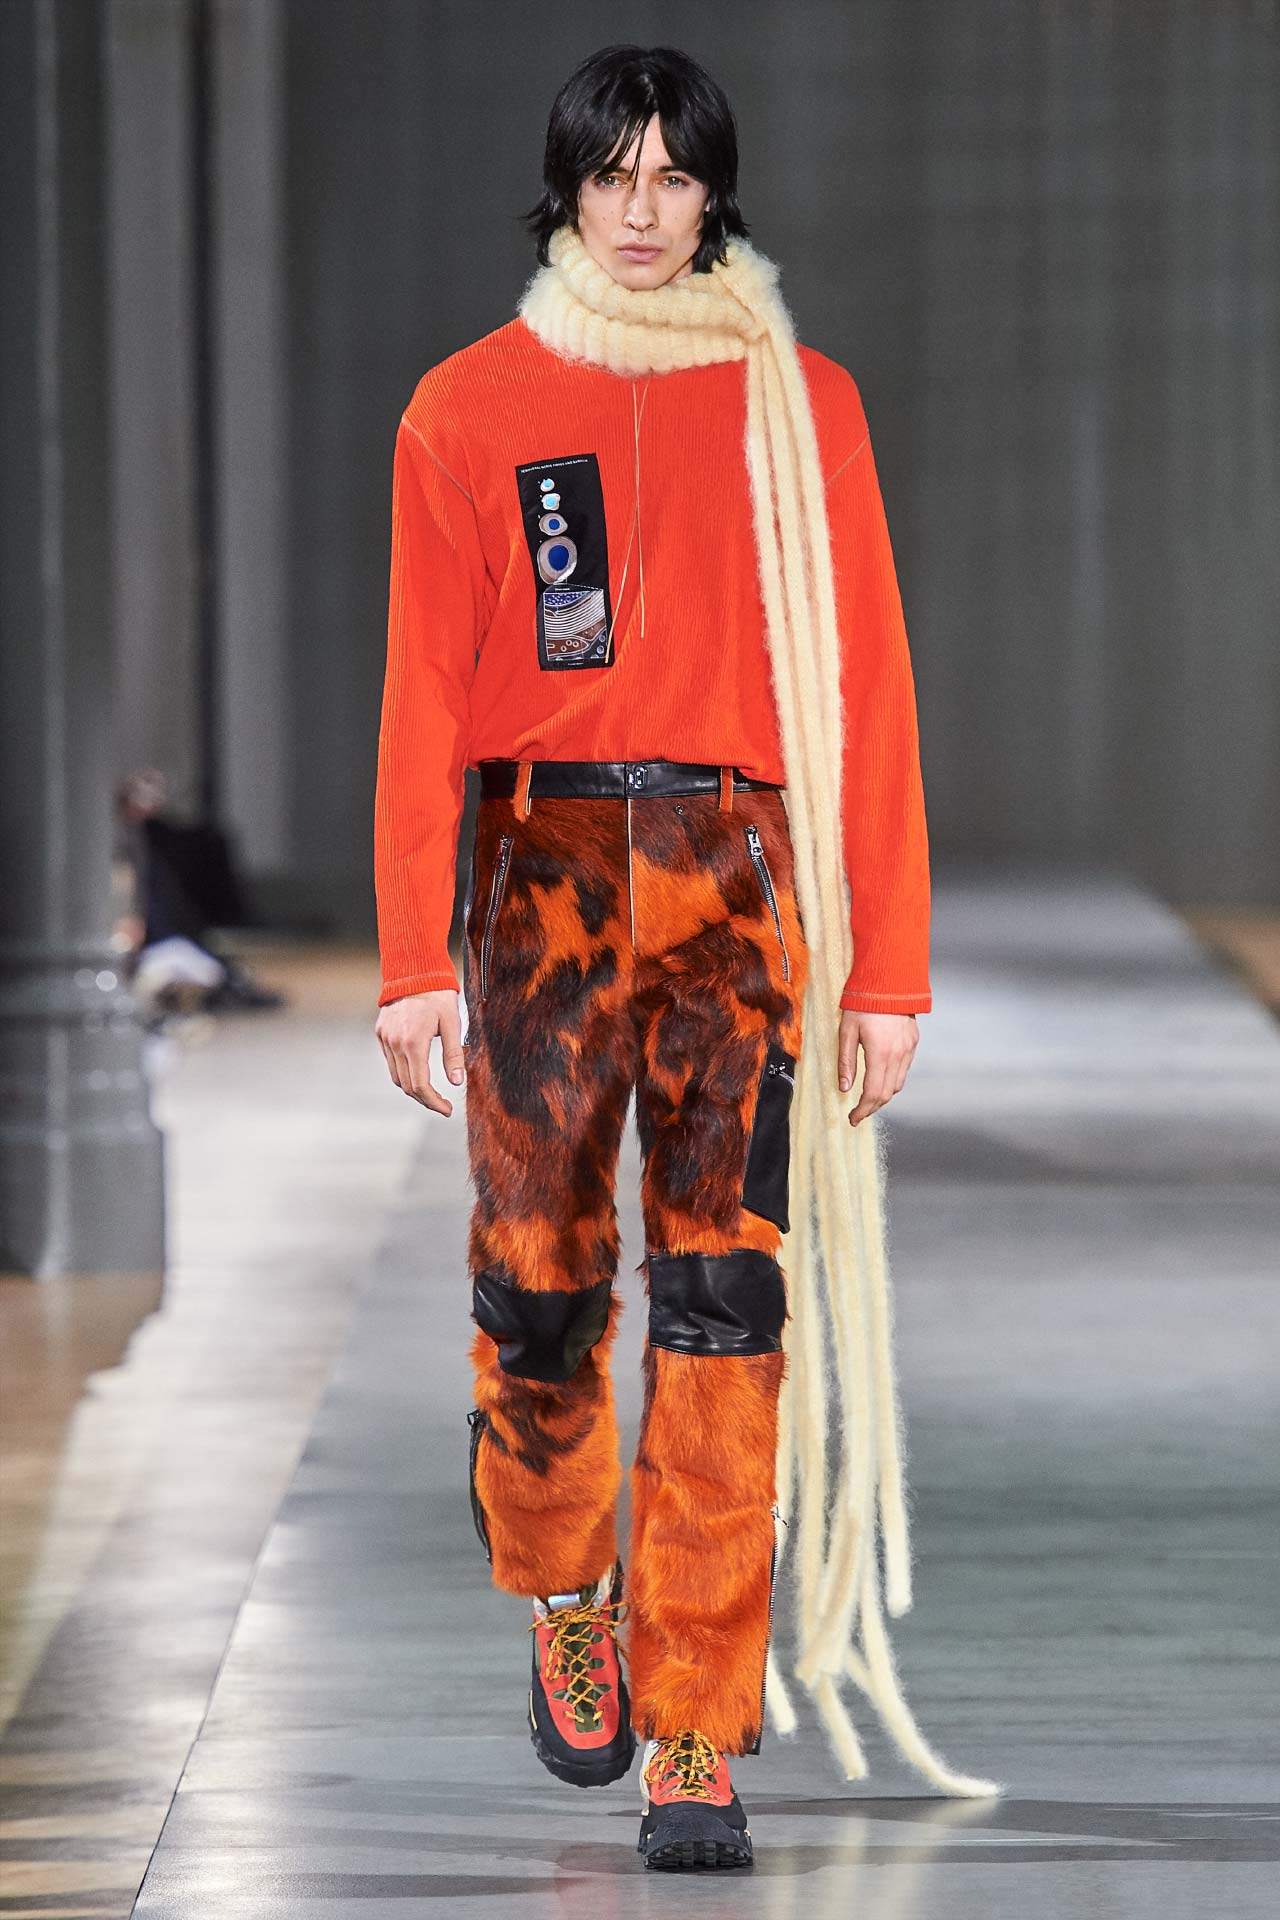 Look Fall/Winter 2019, image 1